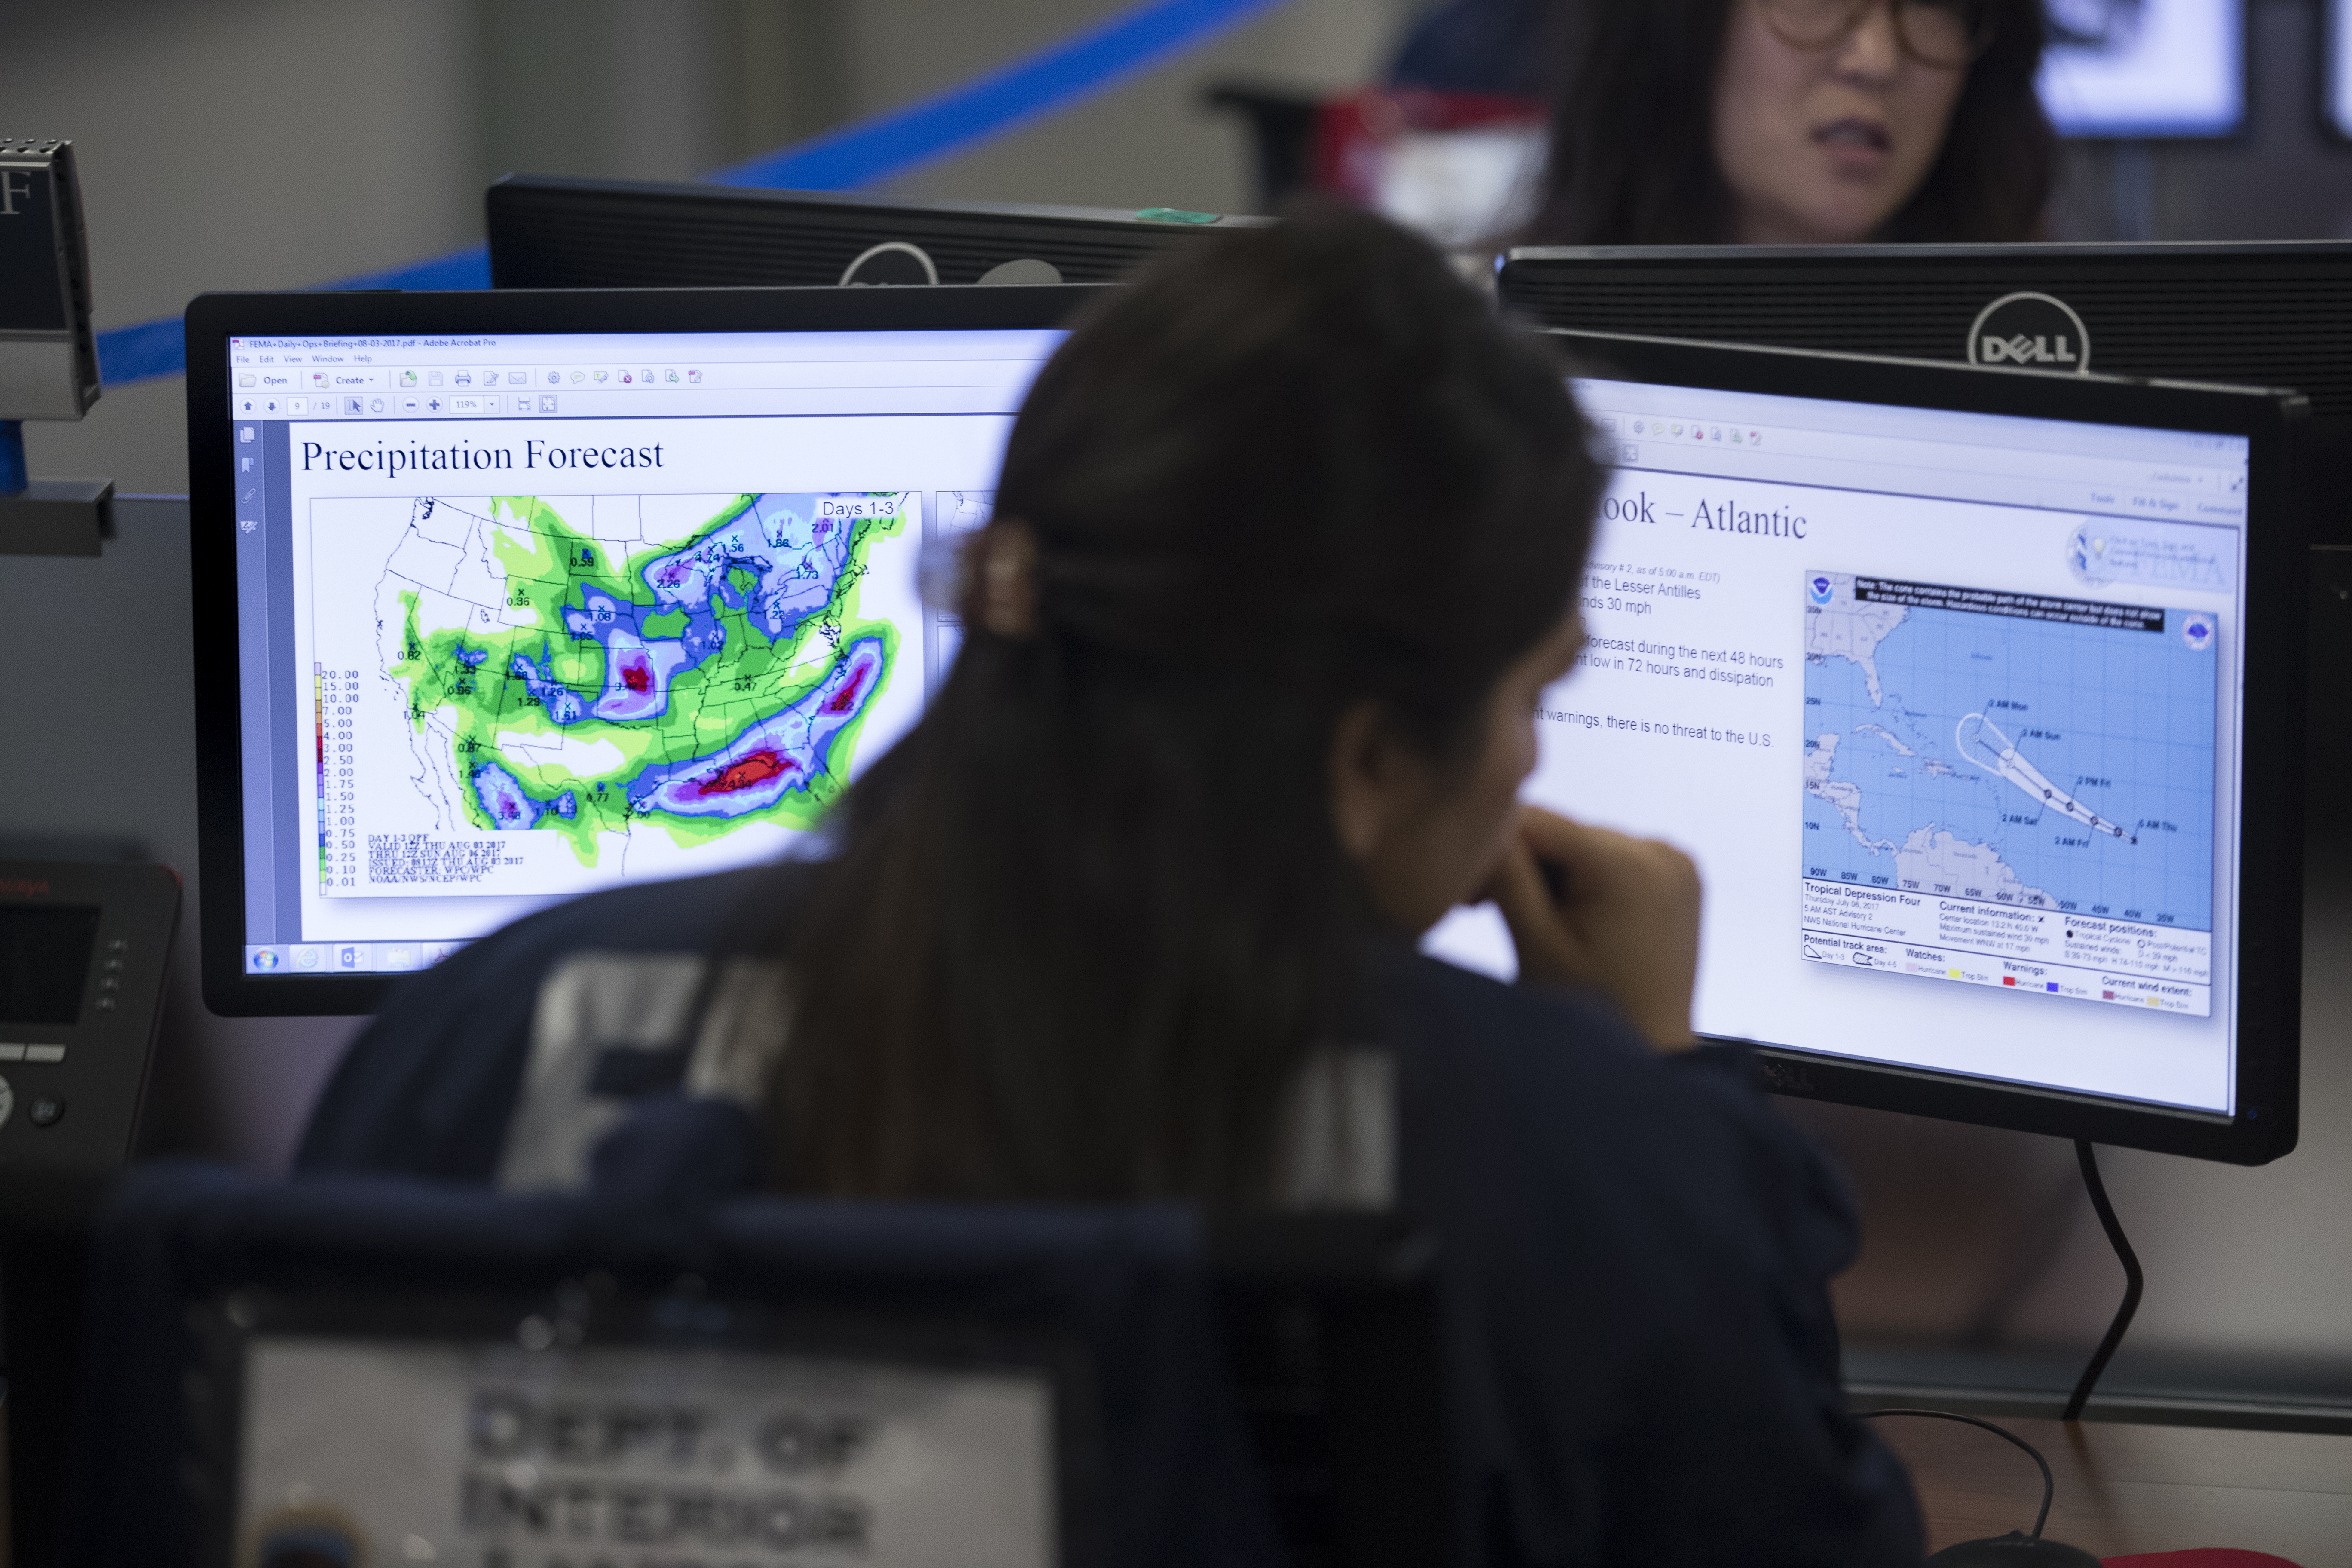 A woman at her desk looks at two computer screens showing weather data.